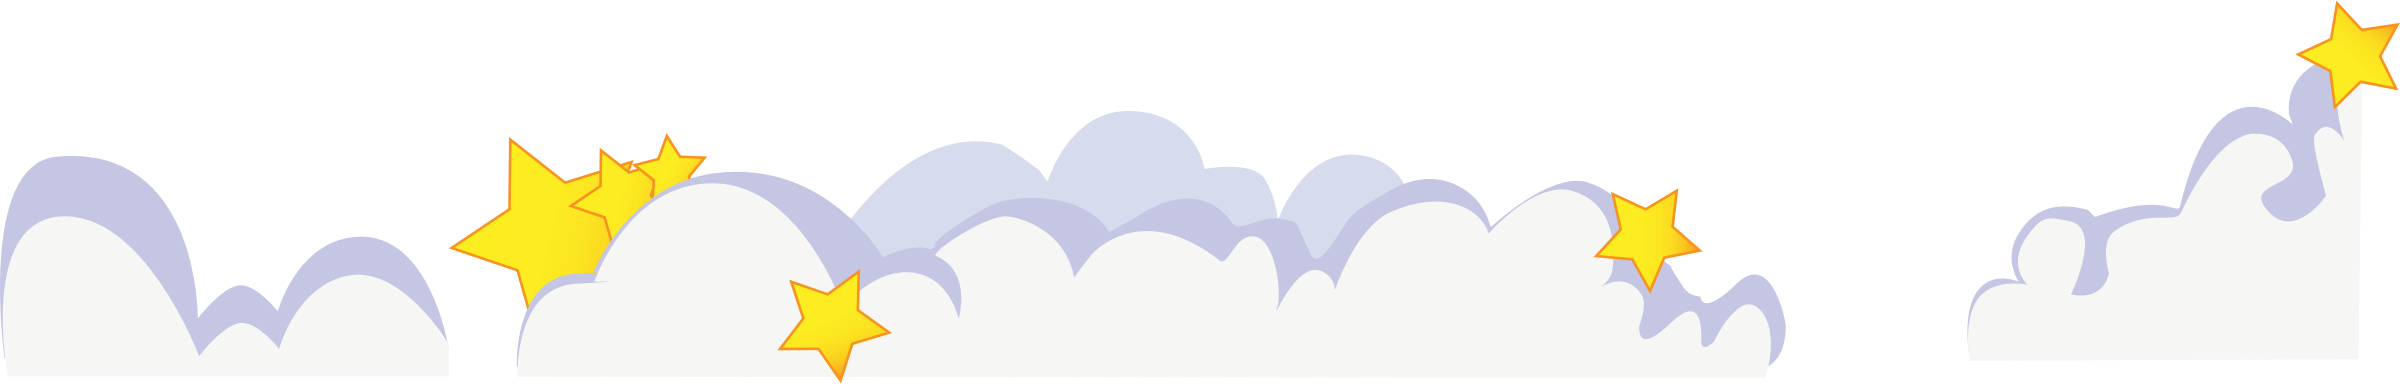 Cute cartoon clouds with stars by mokush